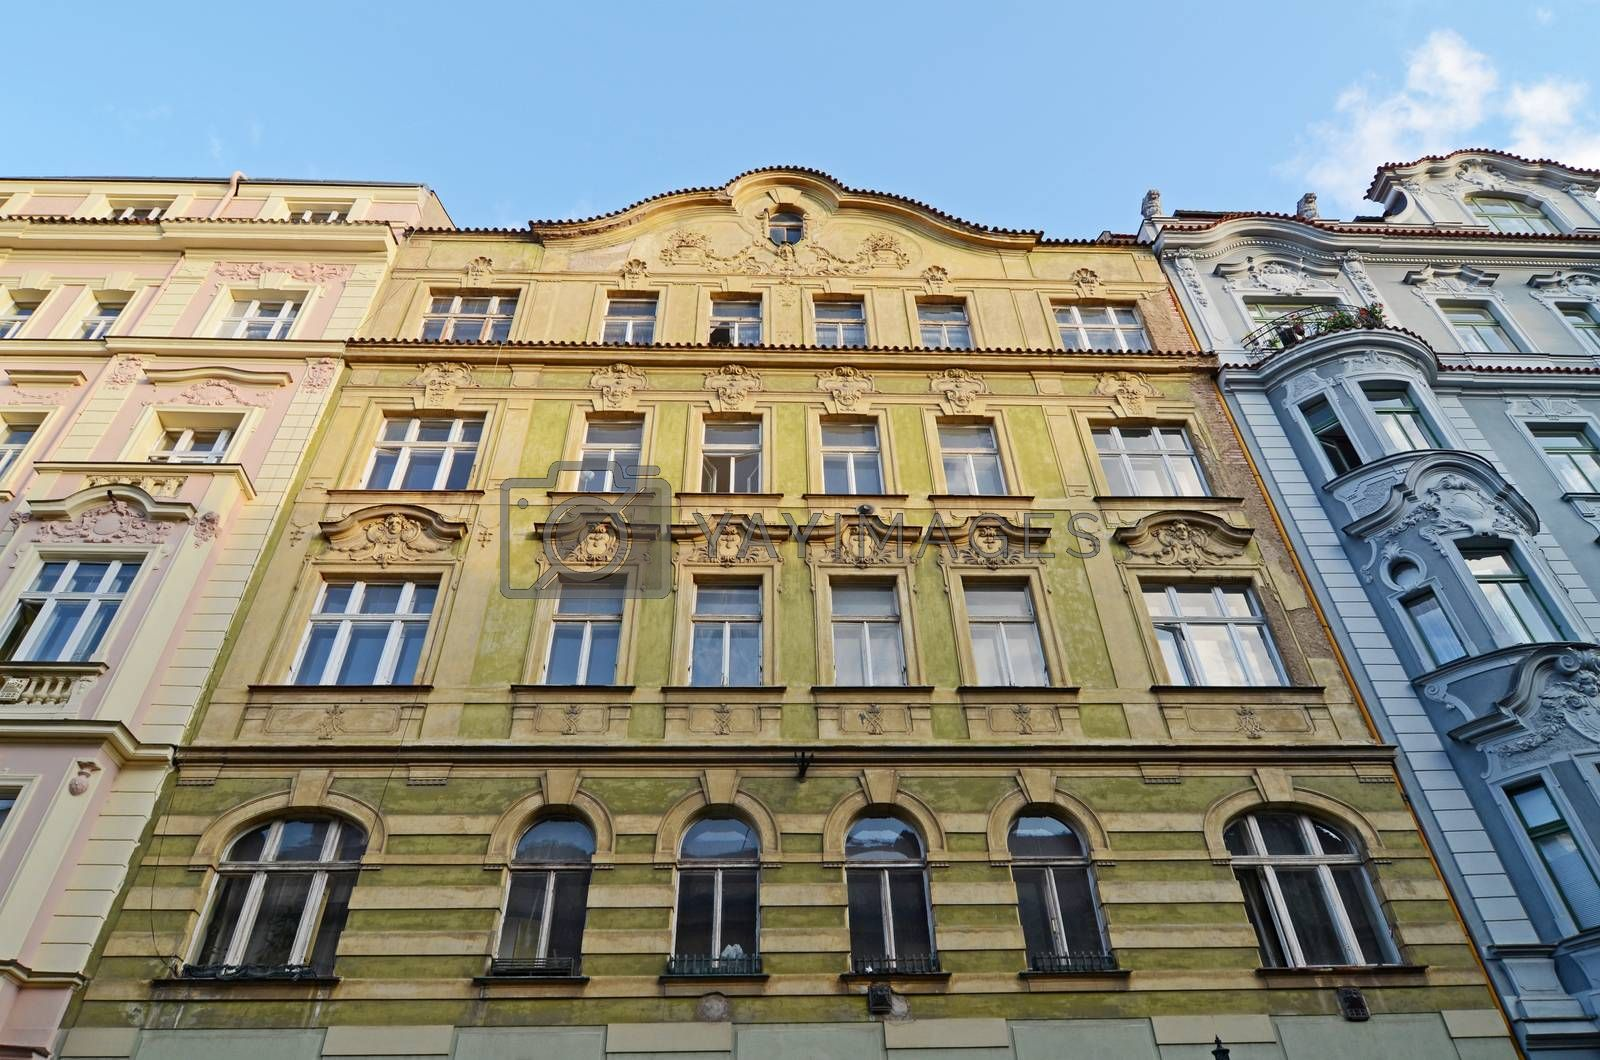 historical architecture in Prague by sarkao